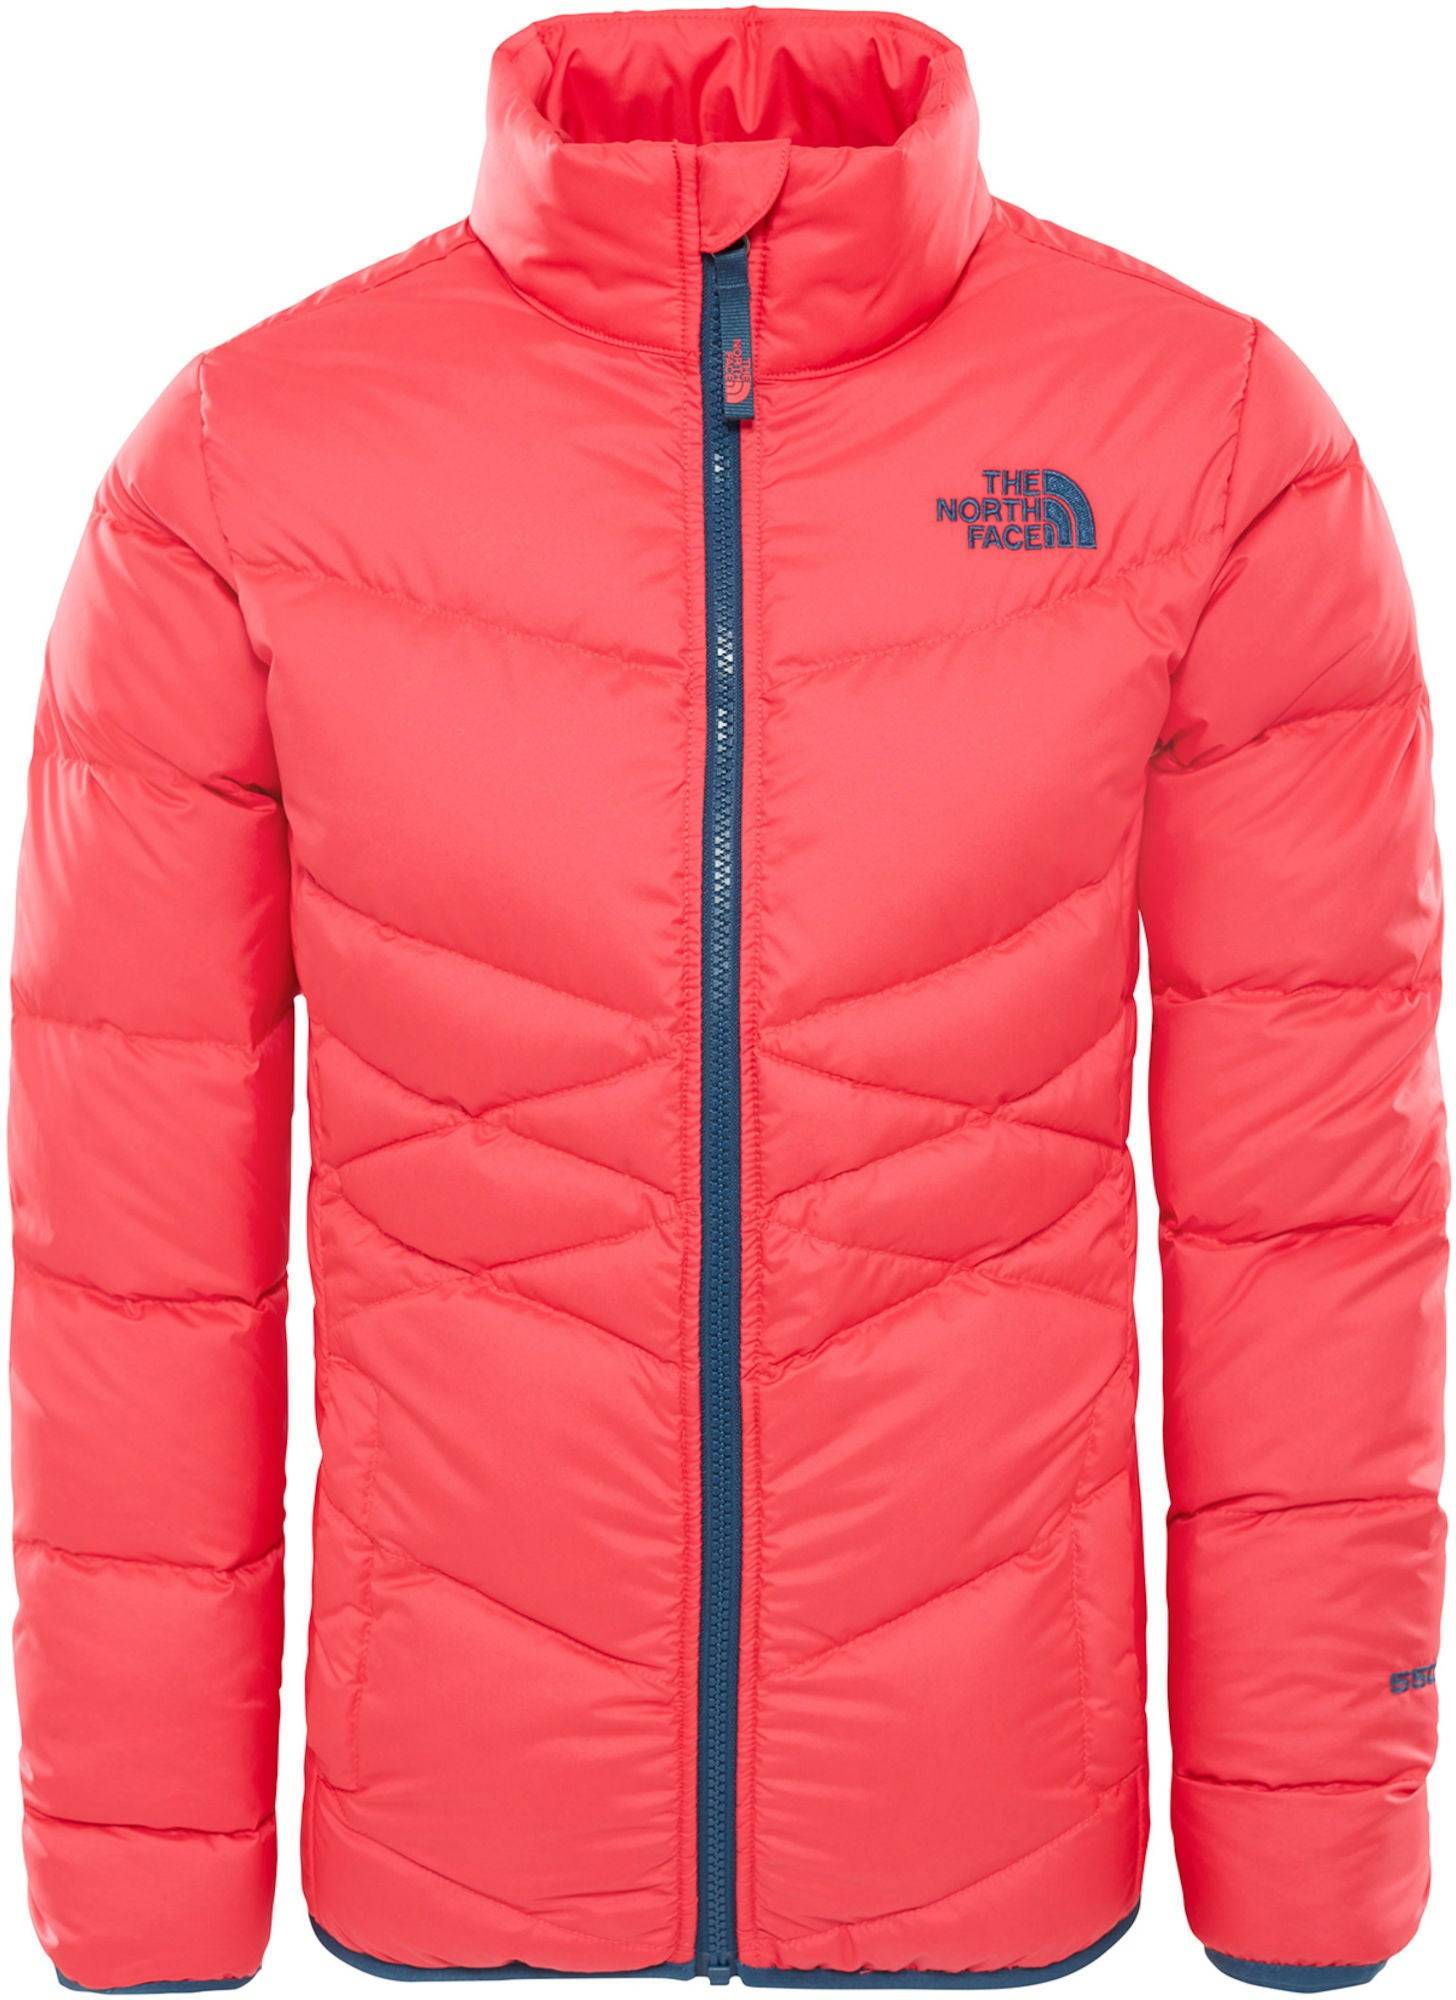 The North Face Andes Down Jacka, Atomic Pink M